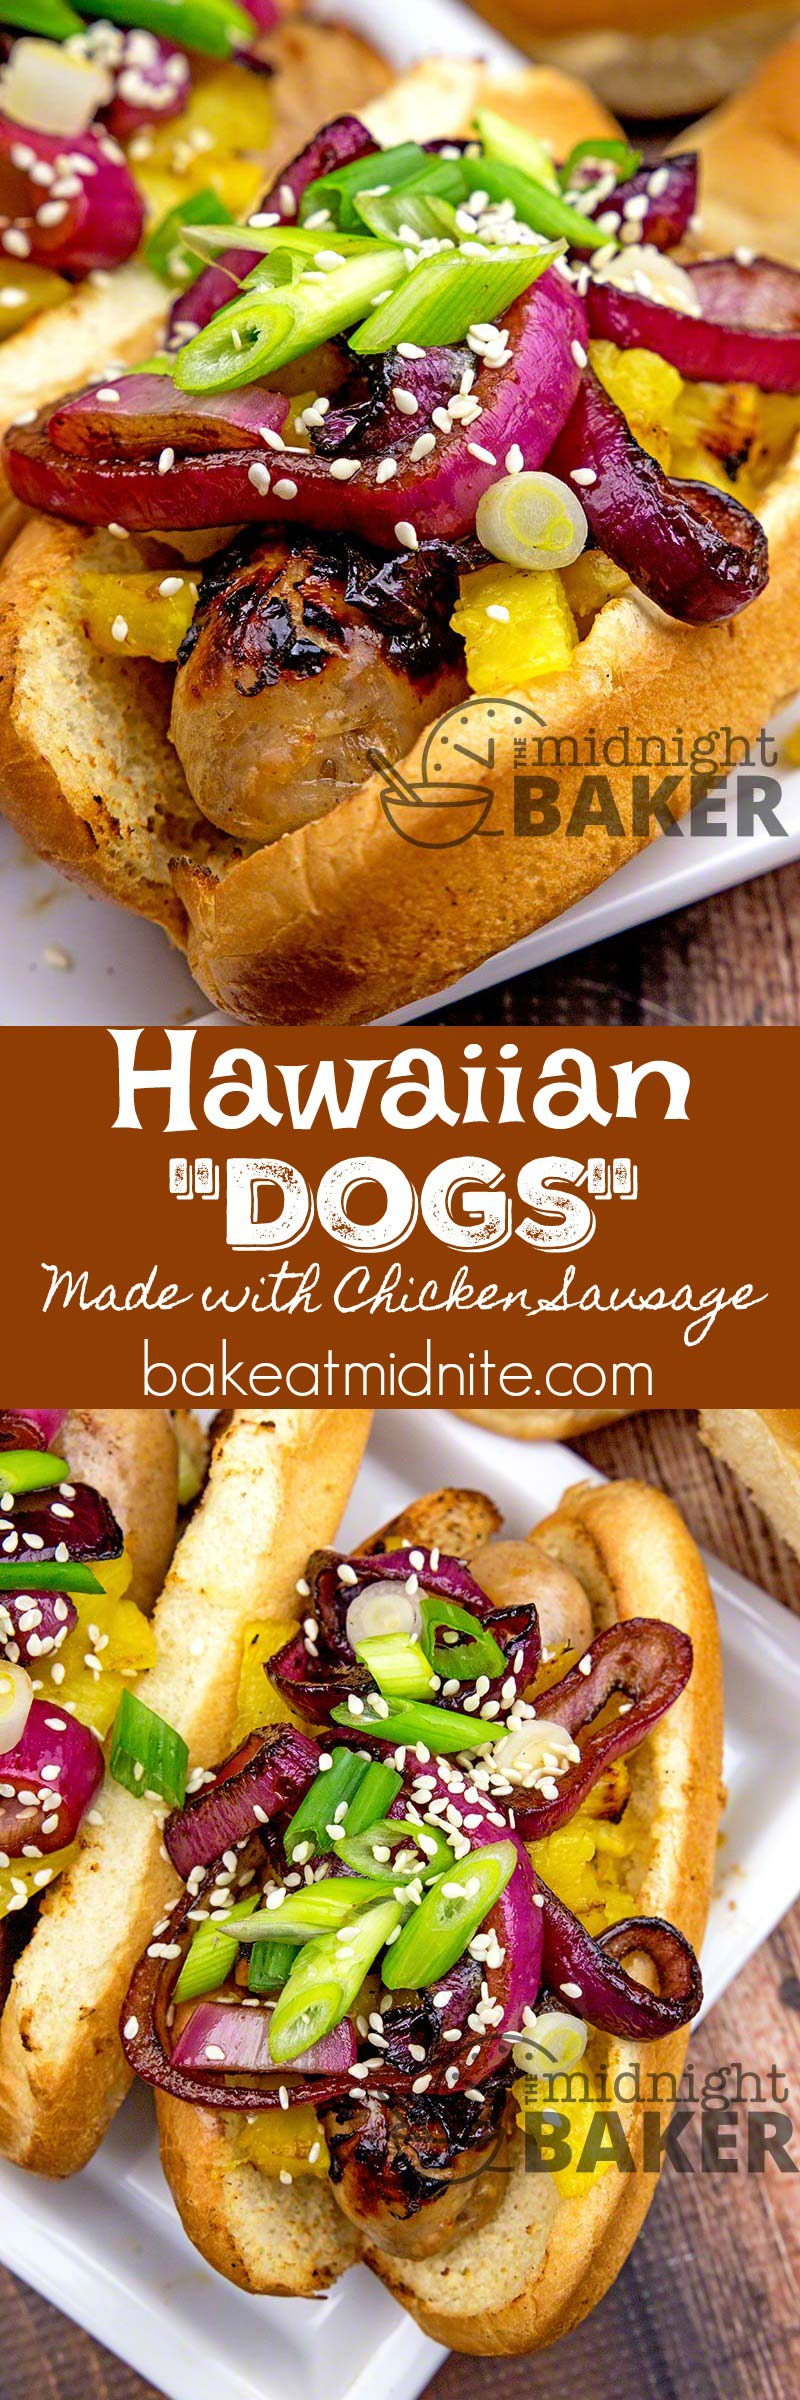 """Make these great """"dogs"""" with either franks or chicken sausage. Have a Hawaiian luau at your next cookout!"""